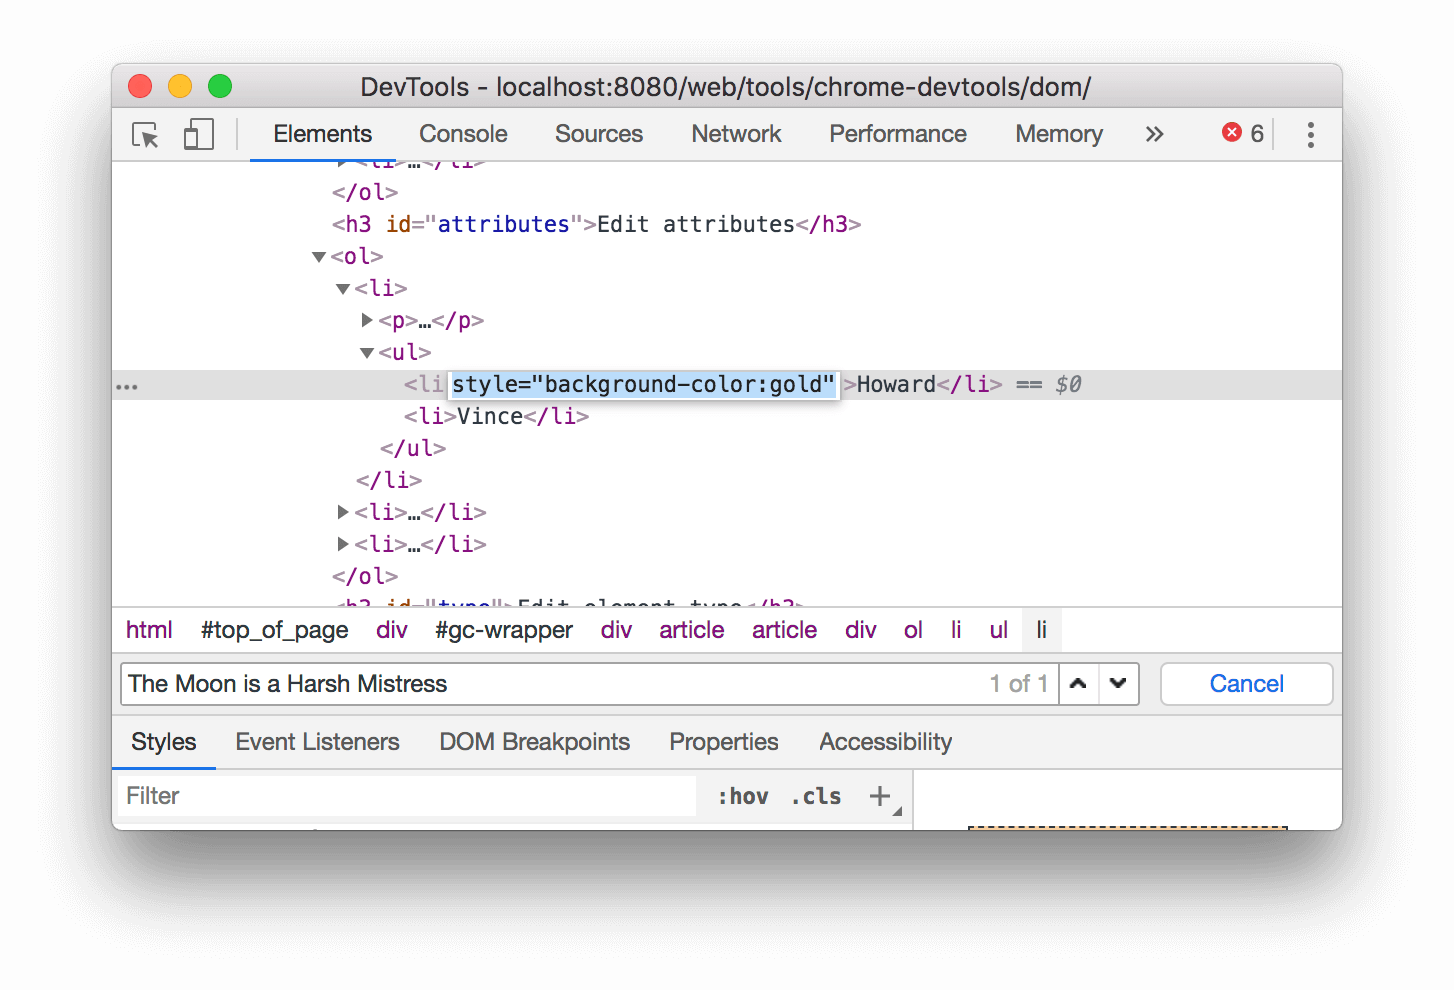 Adding a style attribute to the node